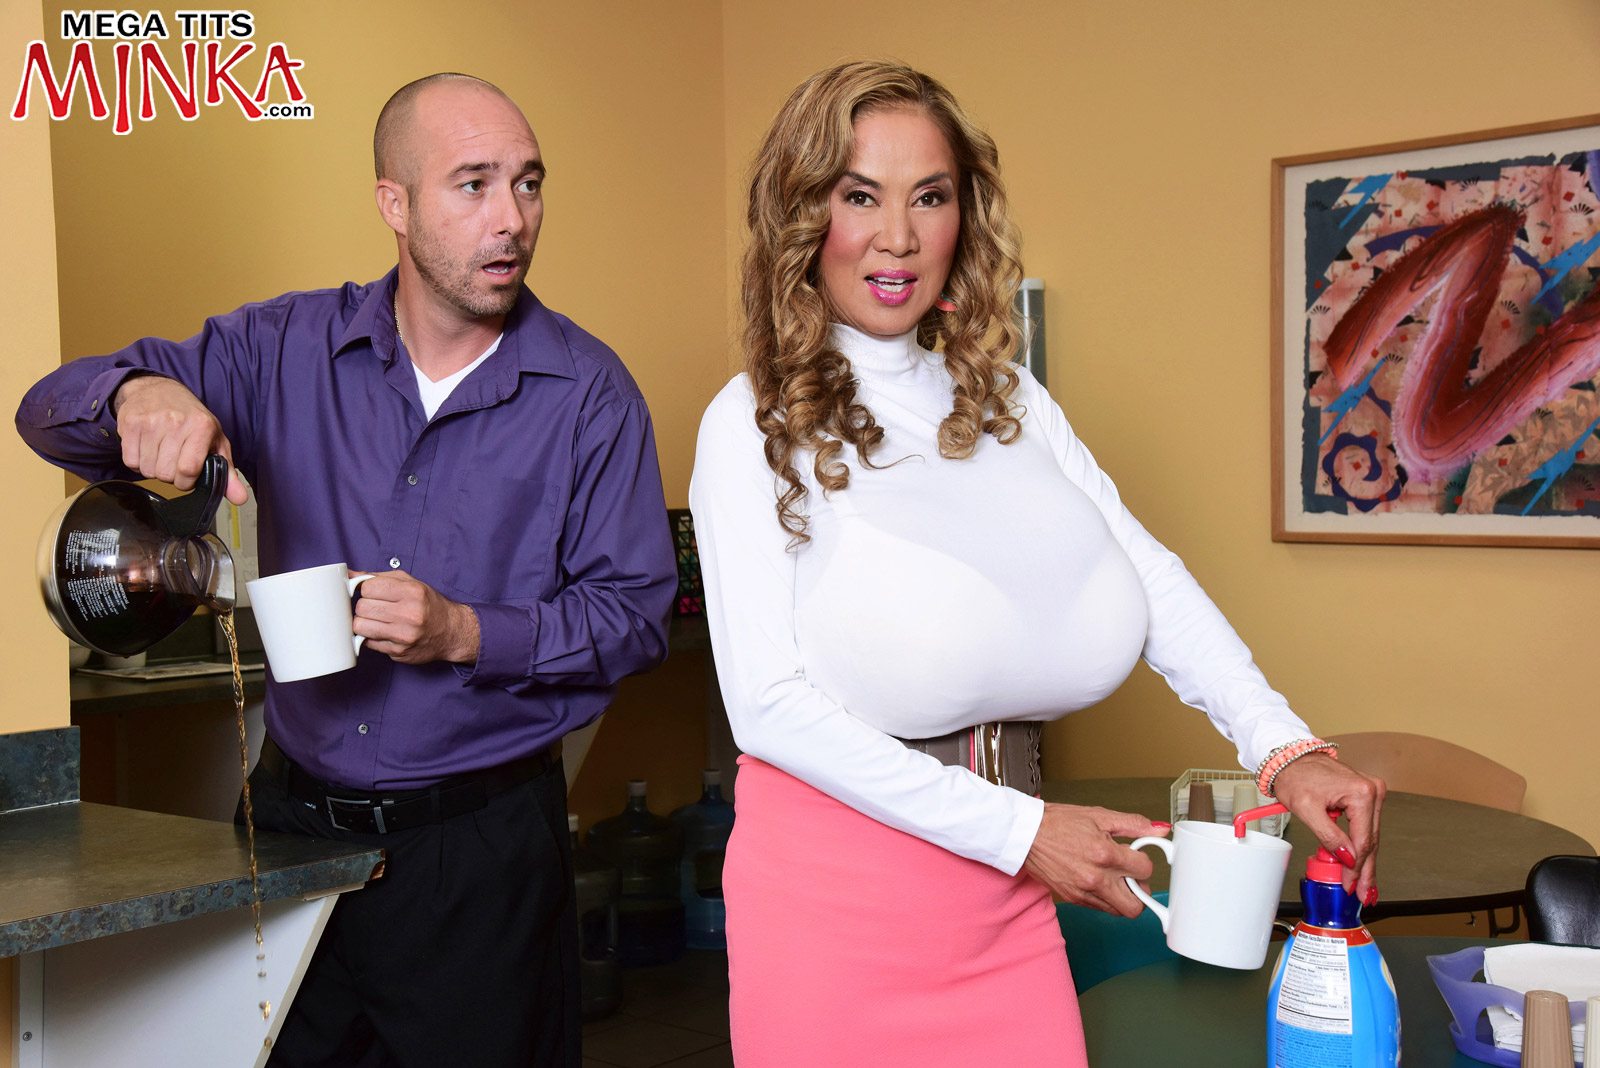 Mega-Boobs Office - Minka 50 Photos - Mega Tits Minka-7994